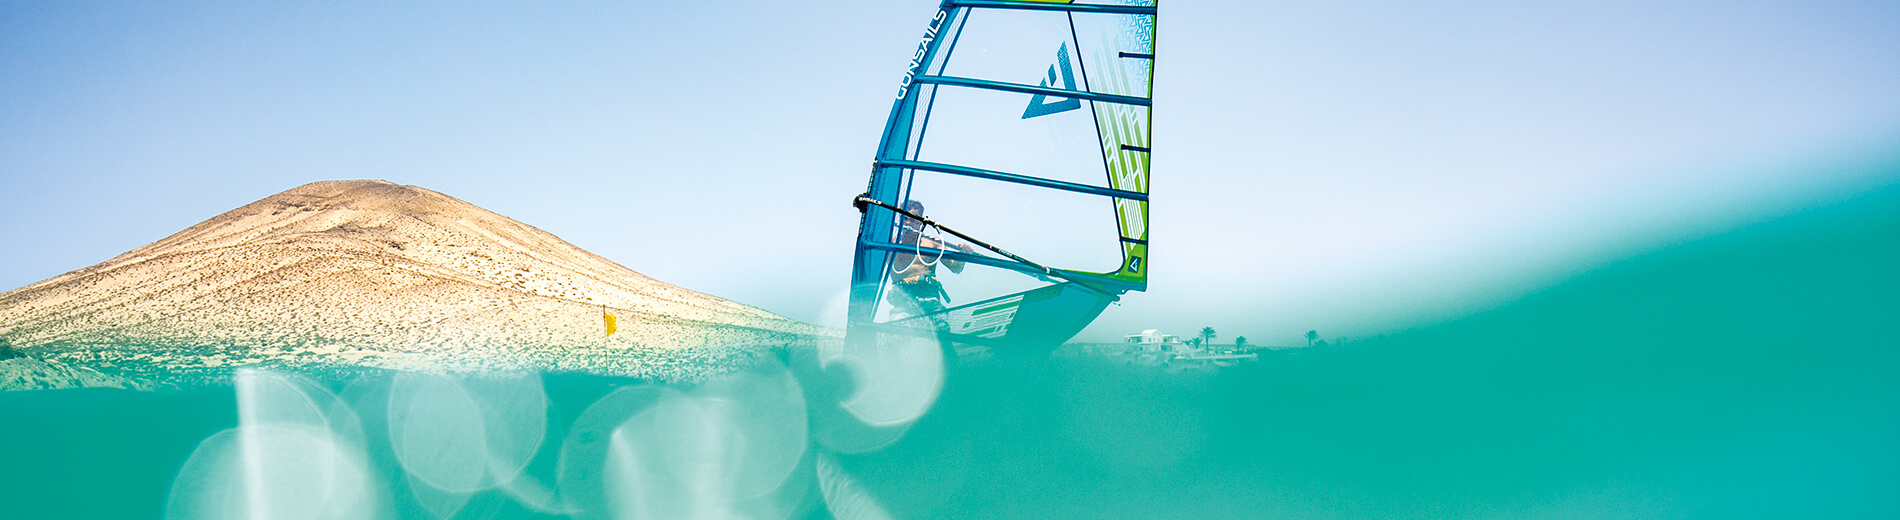 GUNSAILS | Points de vente - Windsurf Shops